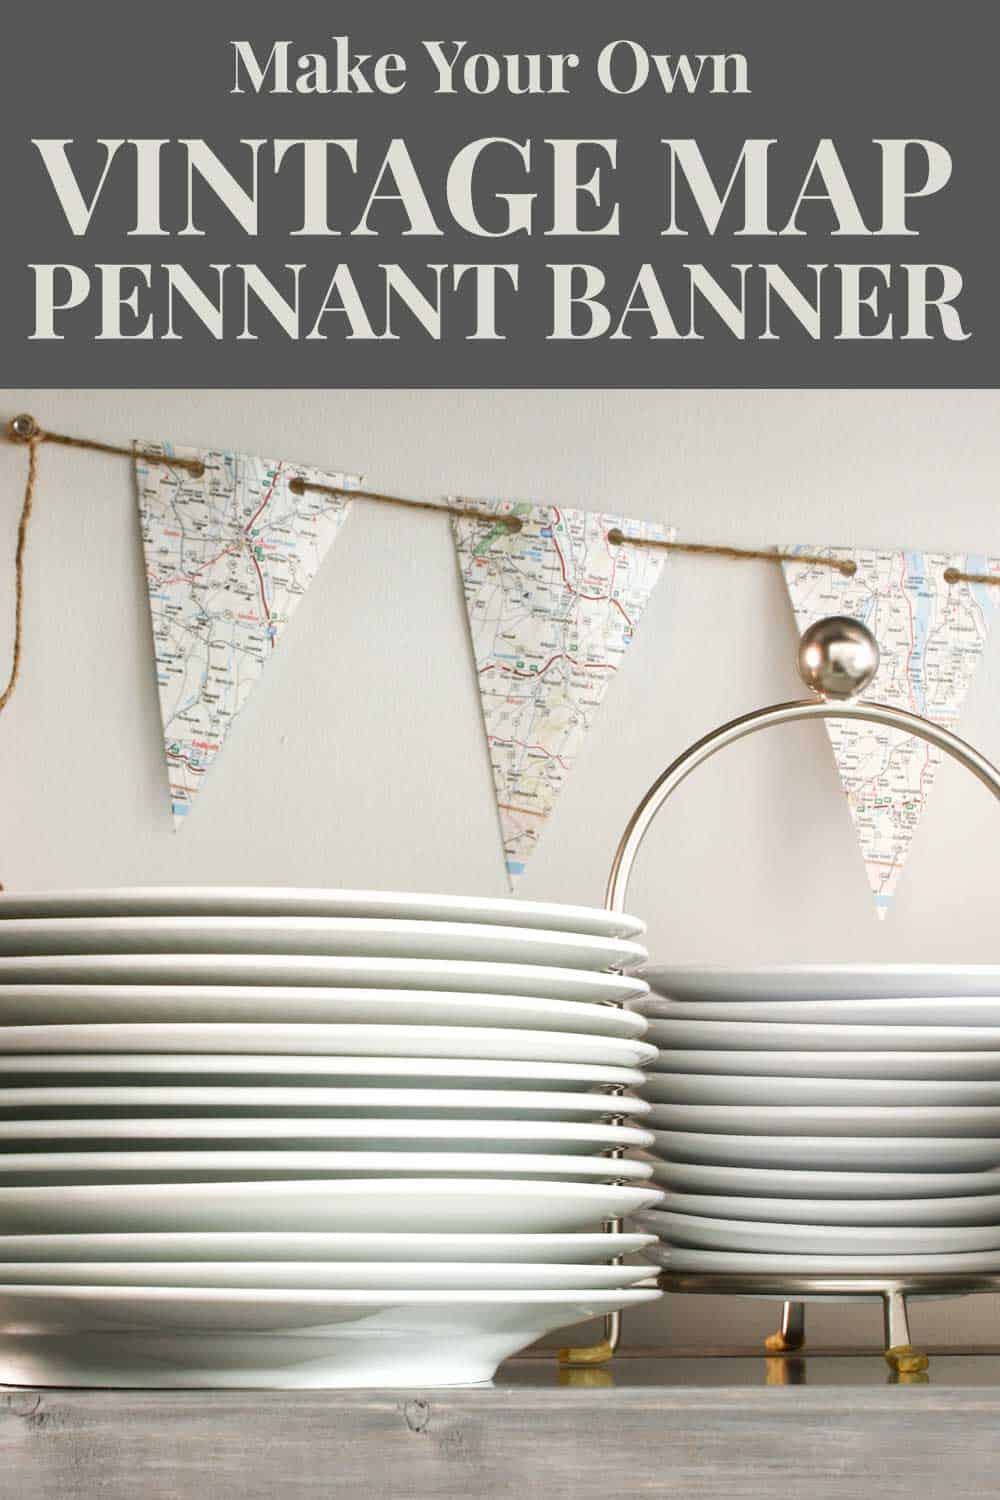 map banner pinned to wall behind stacked white dishes on a shelf